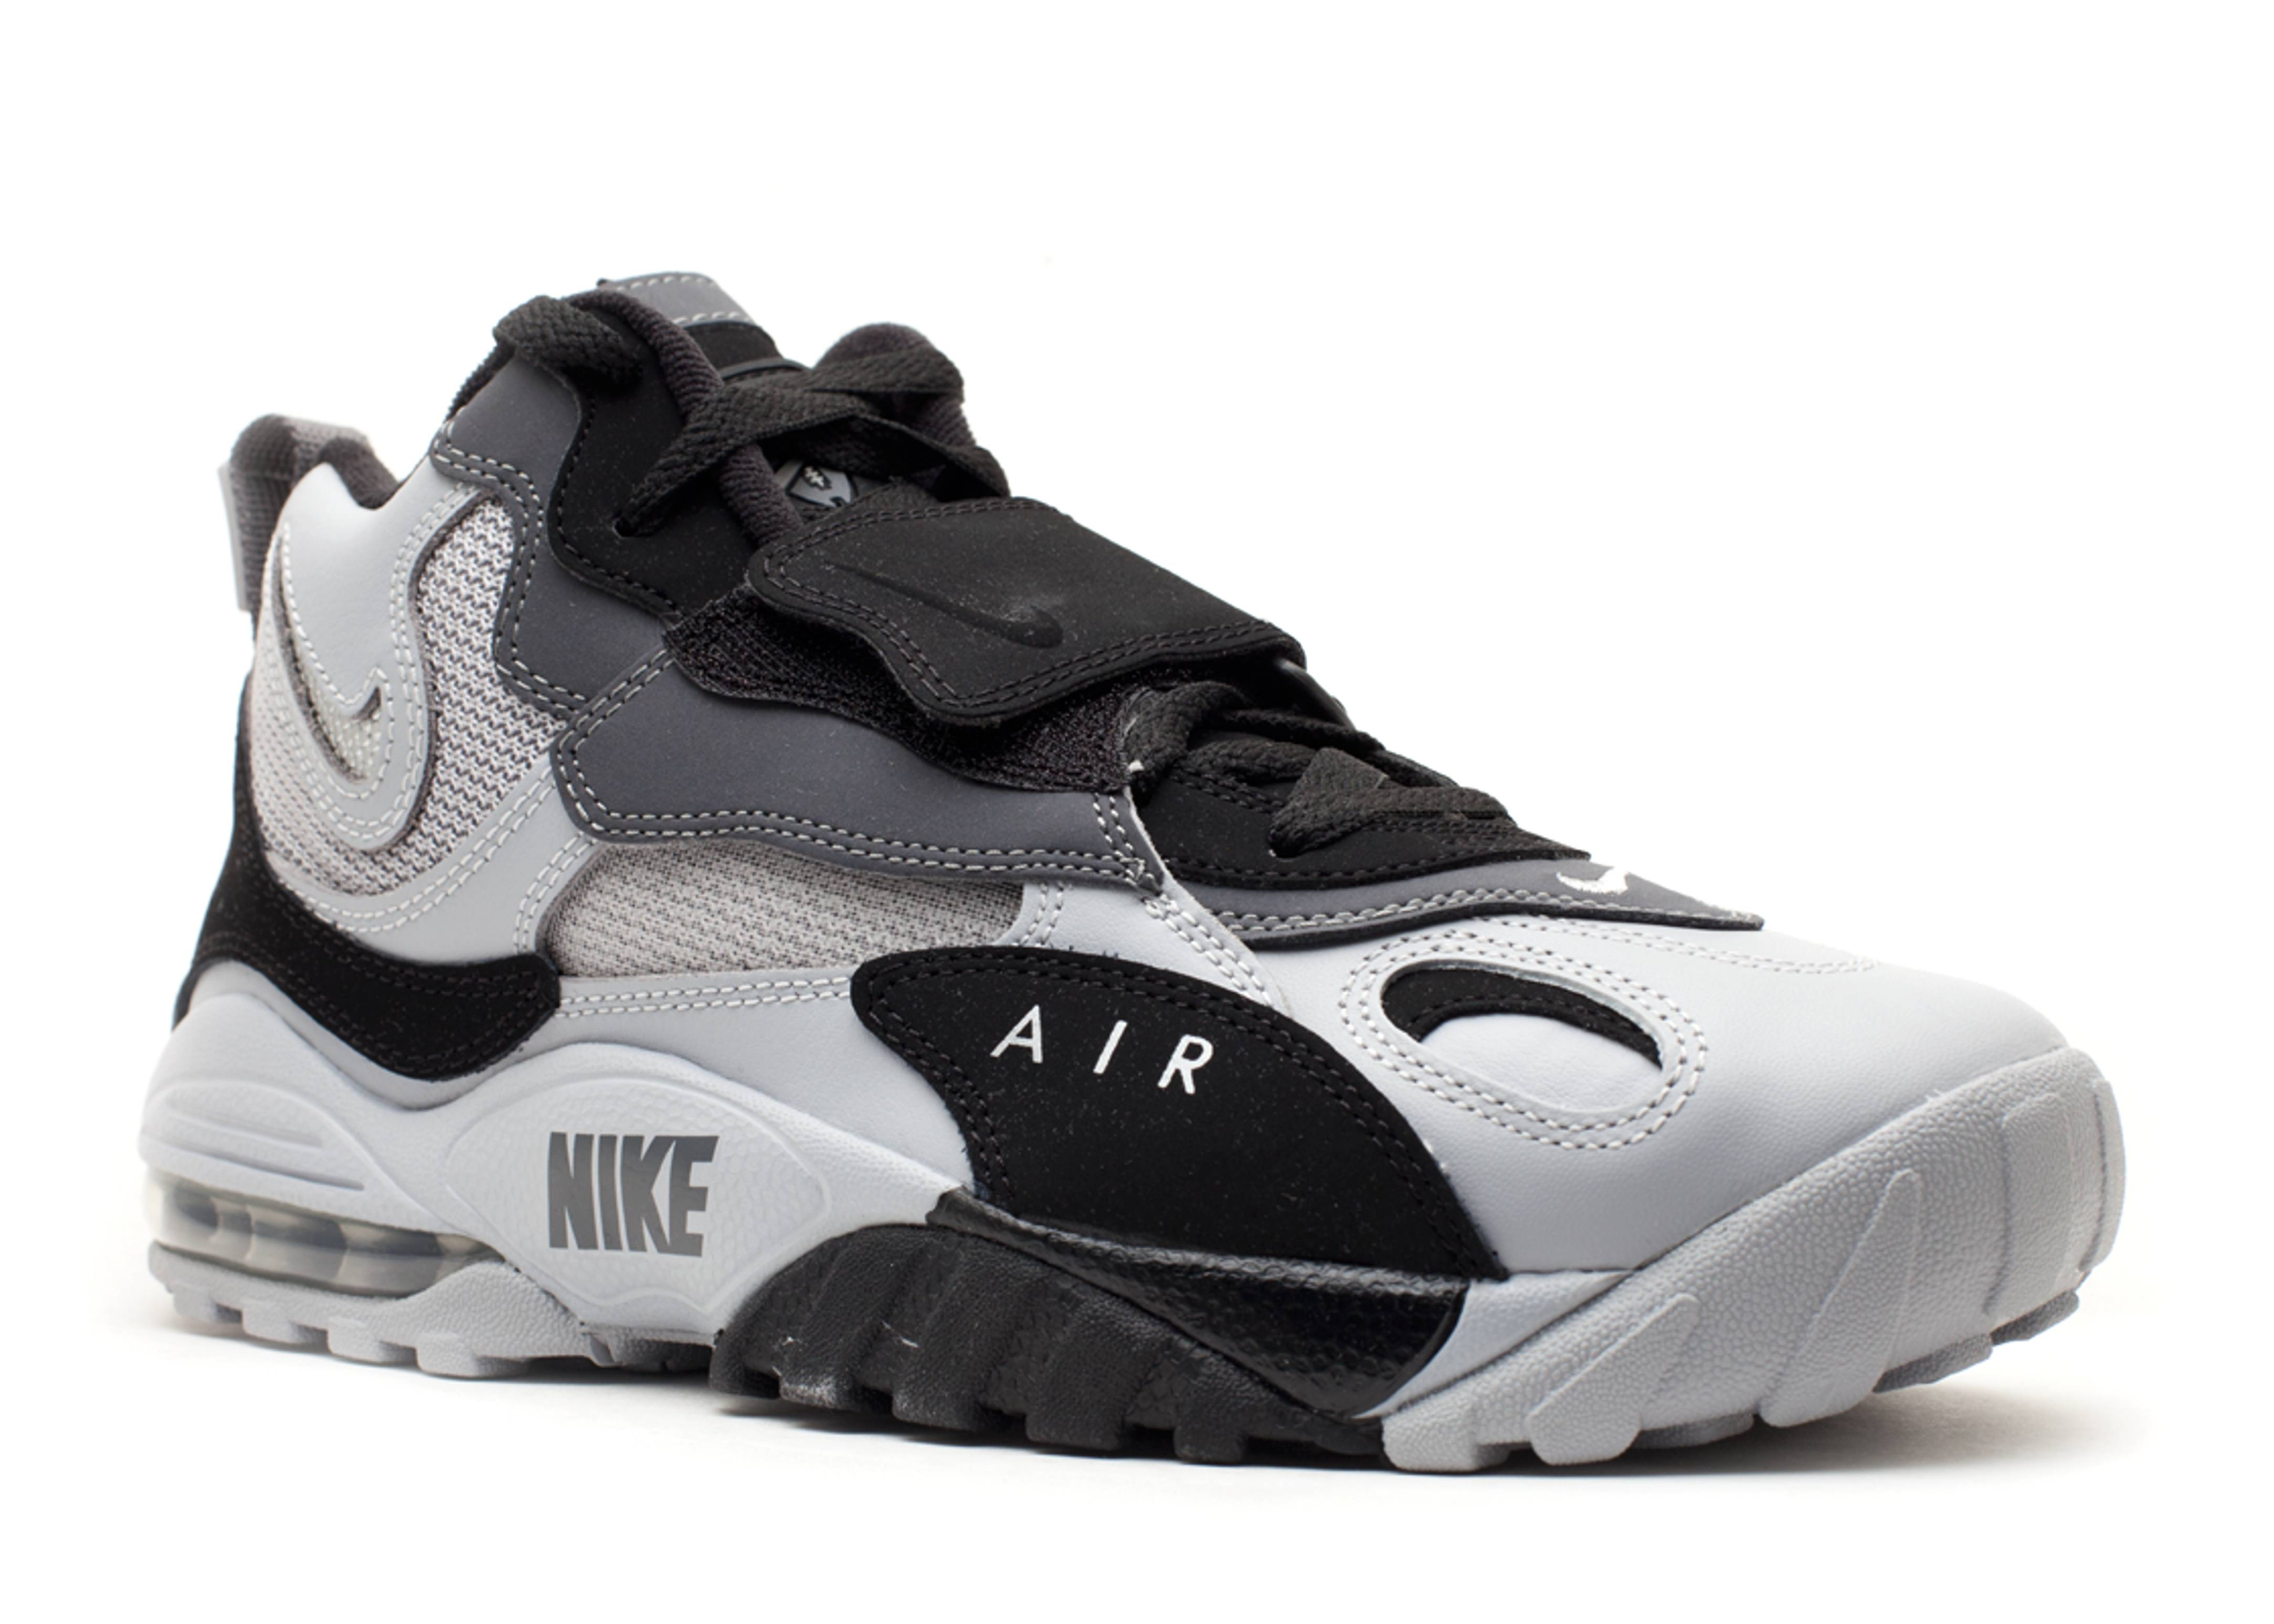 """Préférence Air Max Speed Turf """"oakland Raiders"""" - Nike - 525225 012 - wlf gry  HH81"""